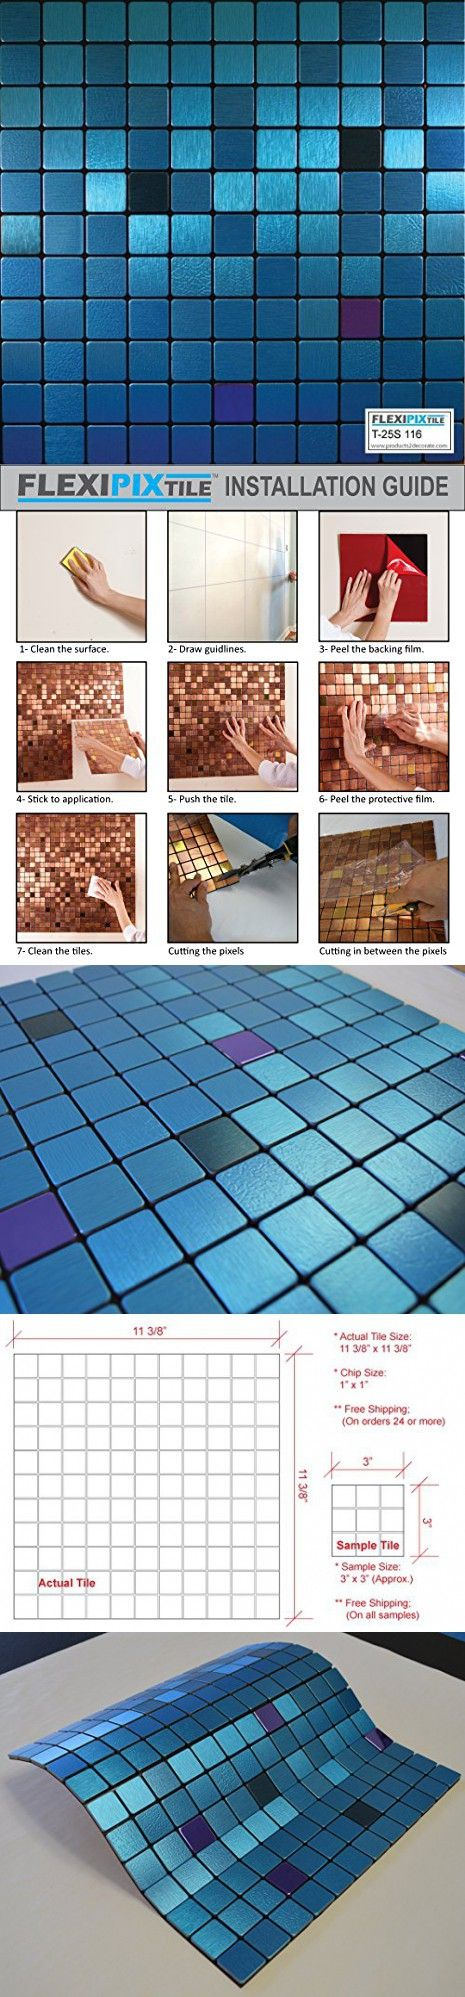 761 best Decorative Tiles images on Pinterest | Room tiles, Subway ...